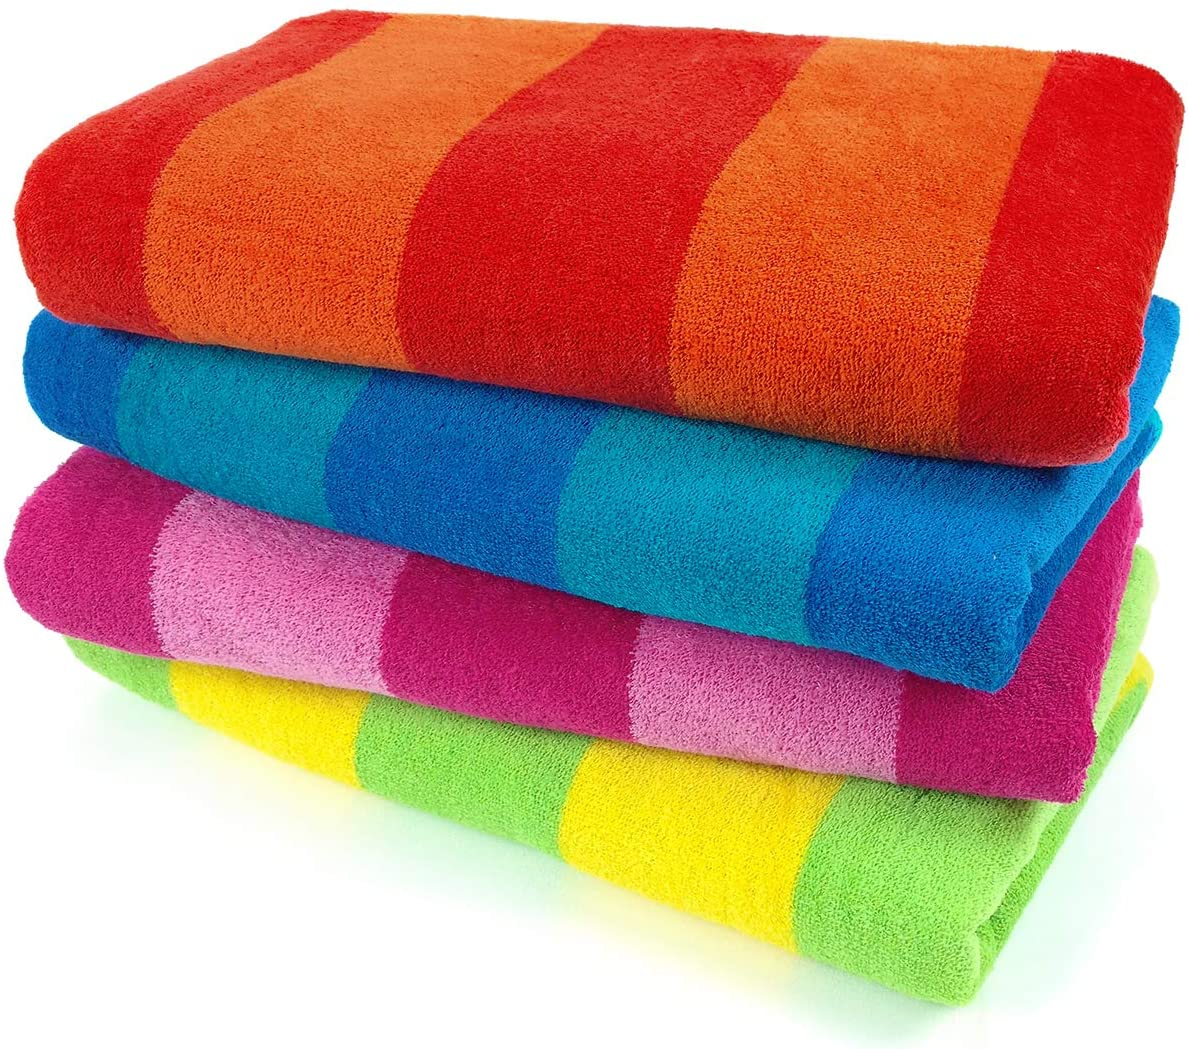 Kaufman – 100% Cotton Velour Striped Beach & Pool Towel